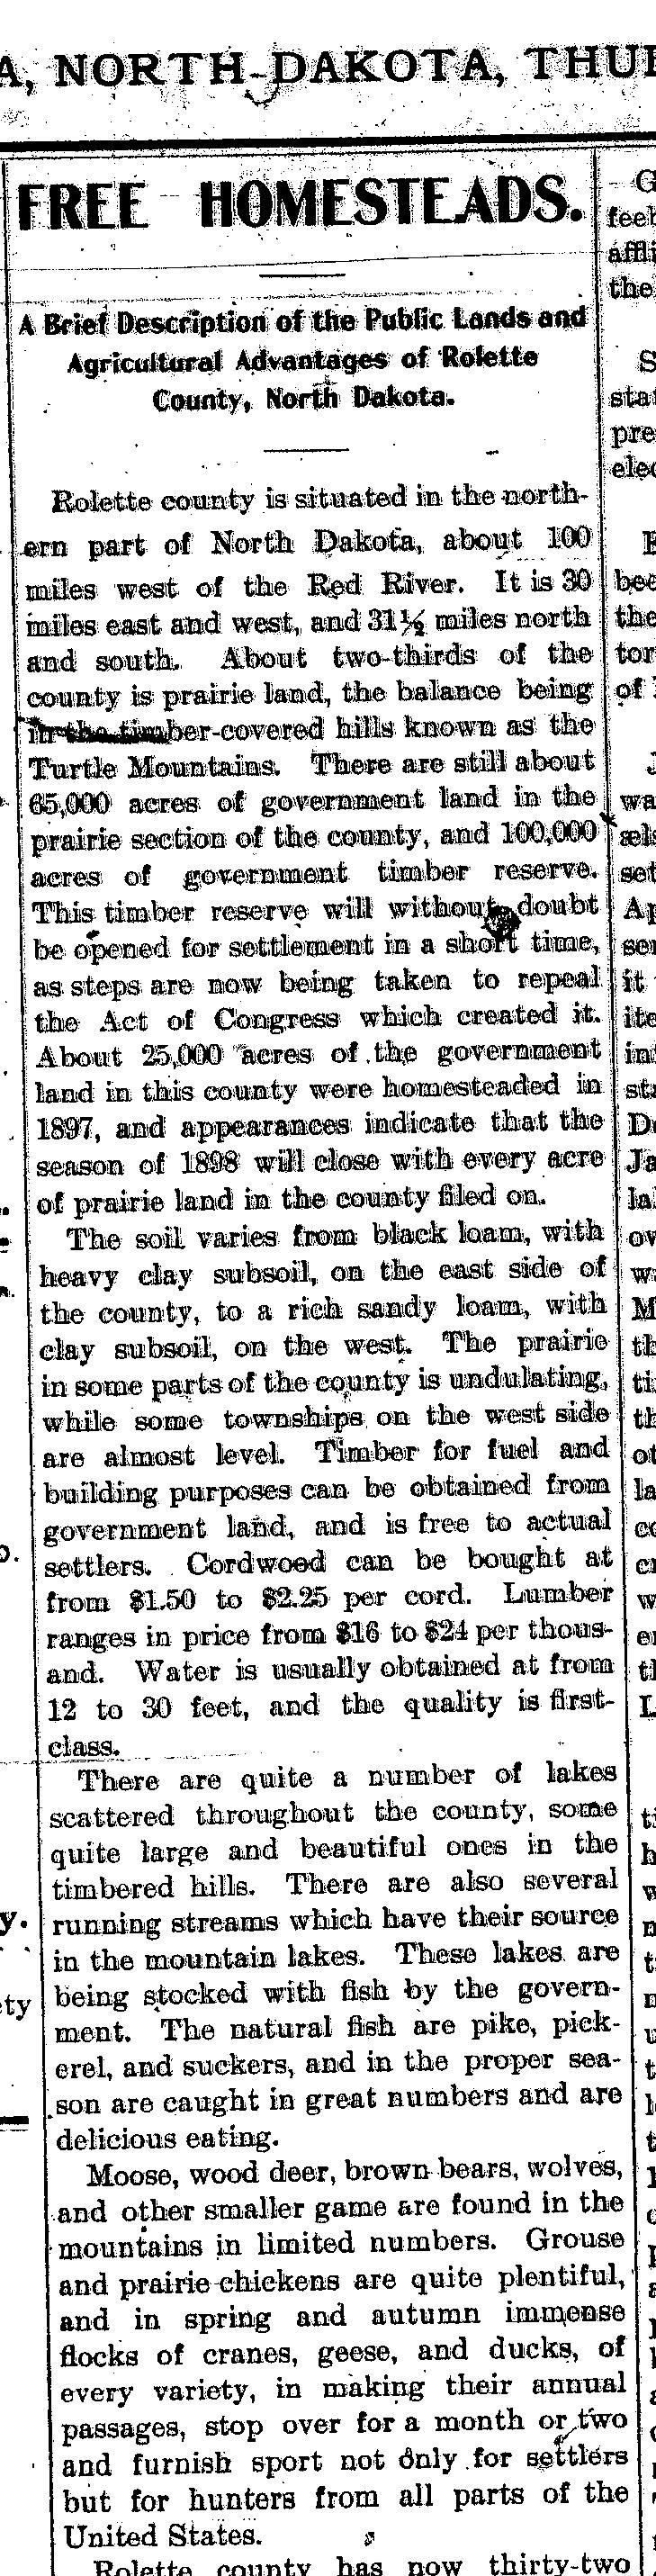 1898 Article Free Homesteads in Rolette County 1